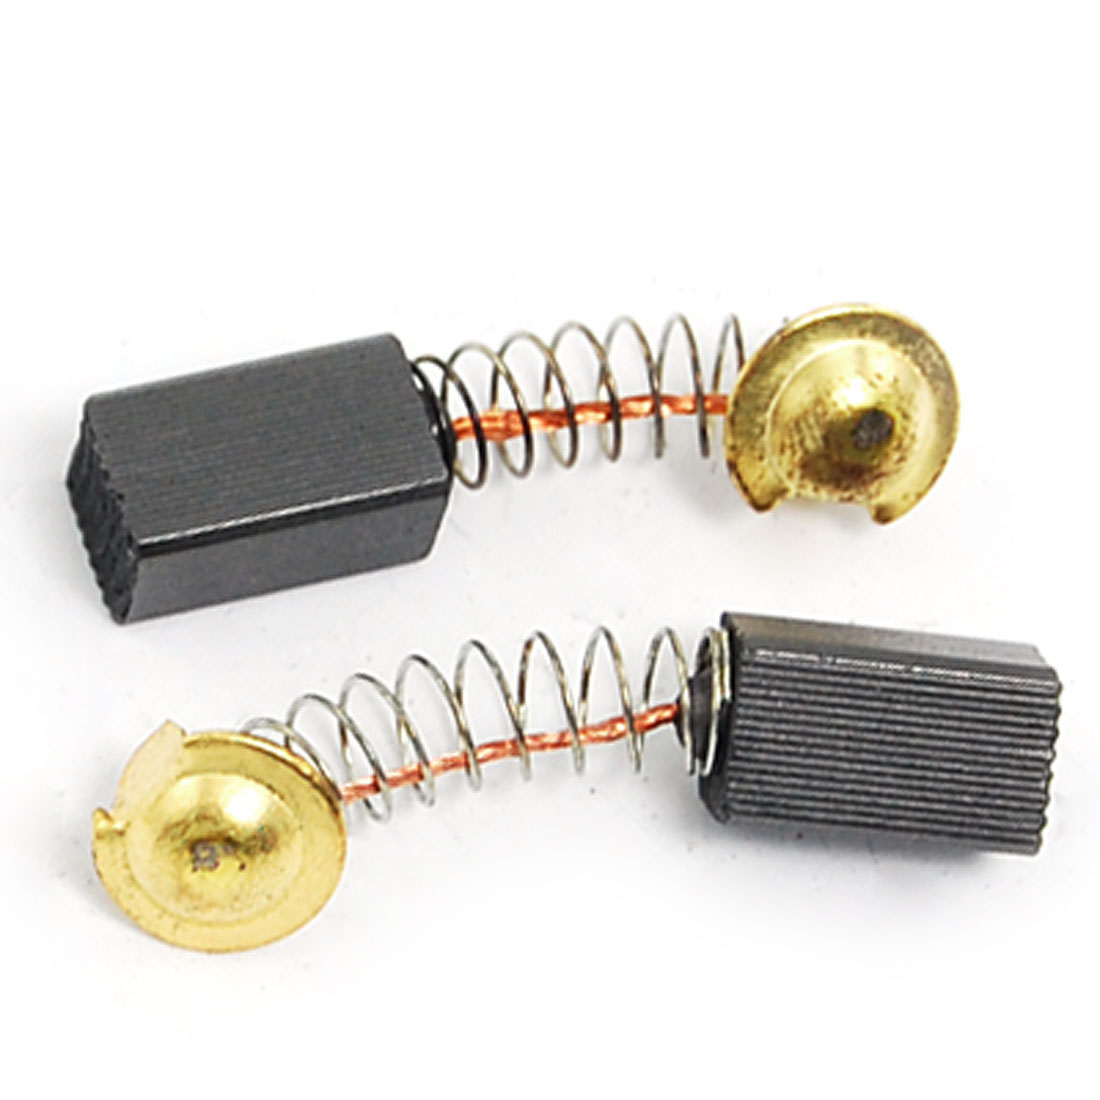 "Replacement 1/2"" x 9/32"" x 1/4"" Electric Motorcarbon Brushes 10 Pairs"